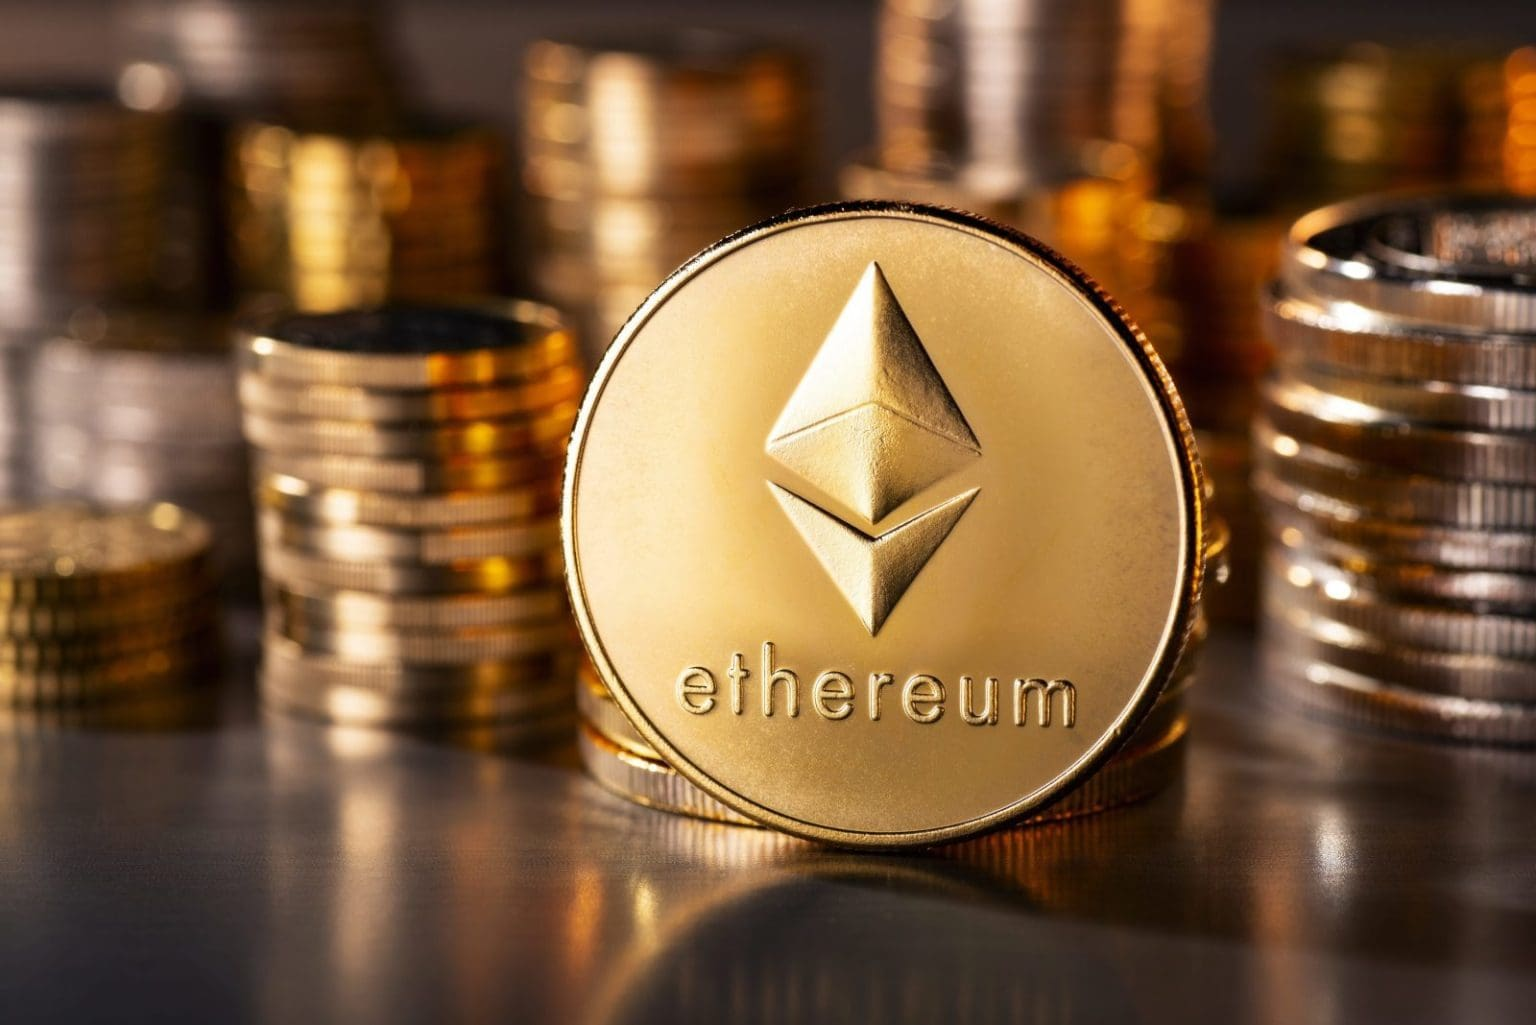 Ethereum could advance even more in the ongoing bull market. Here are the next targets for buyers